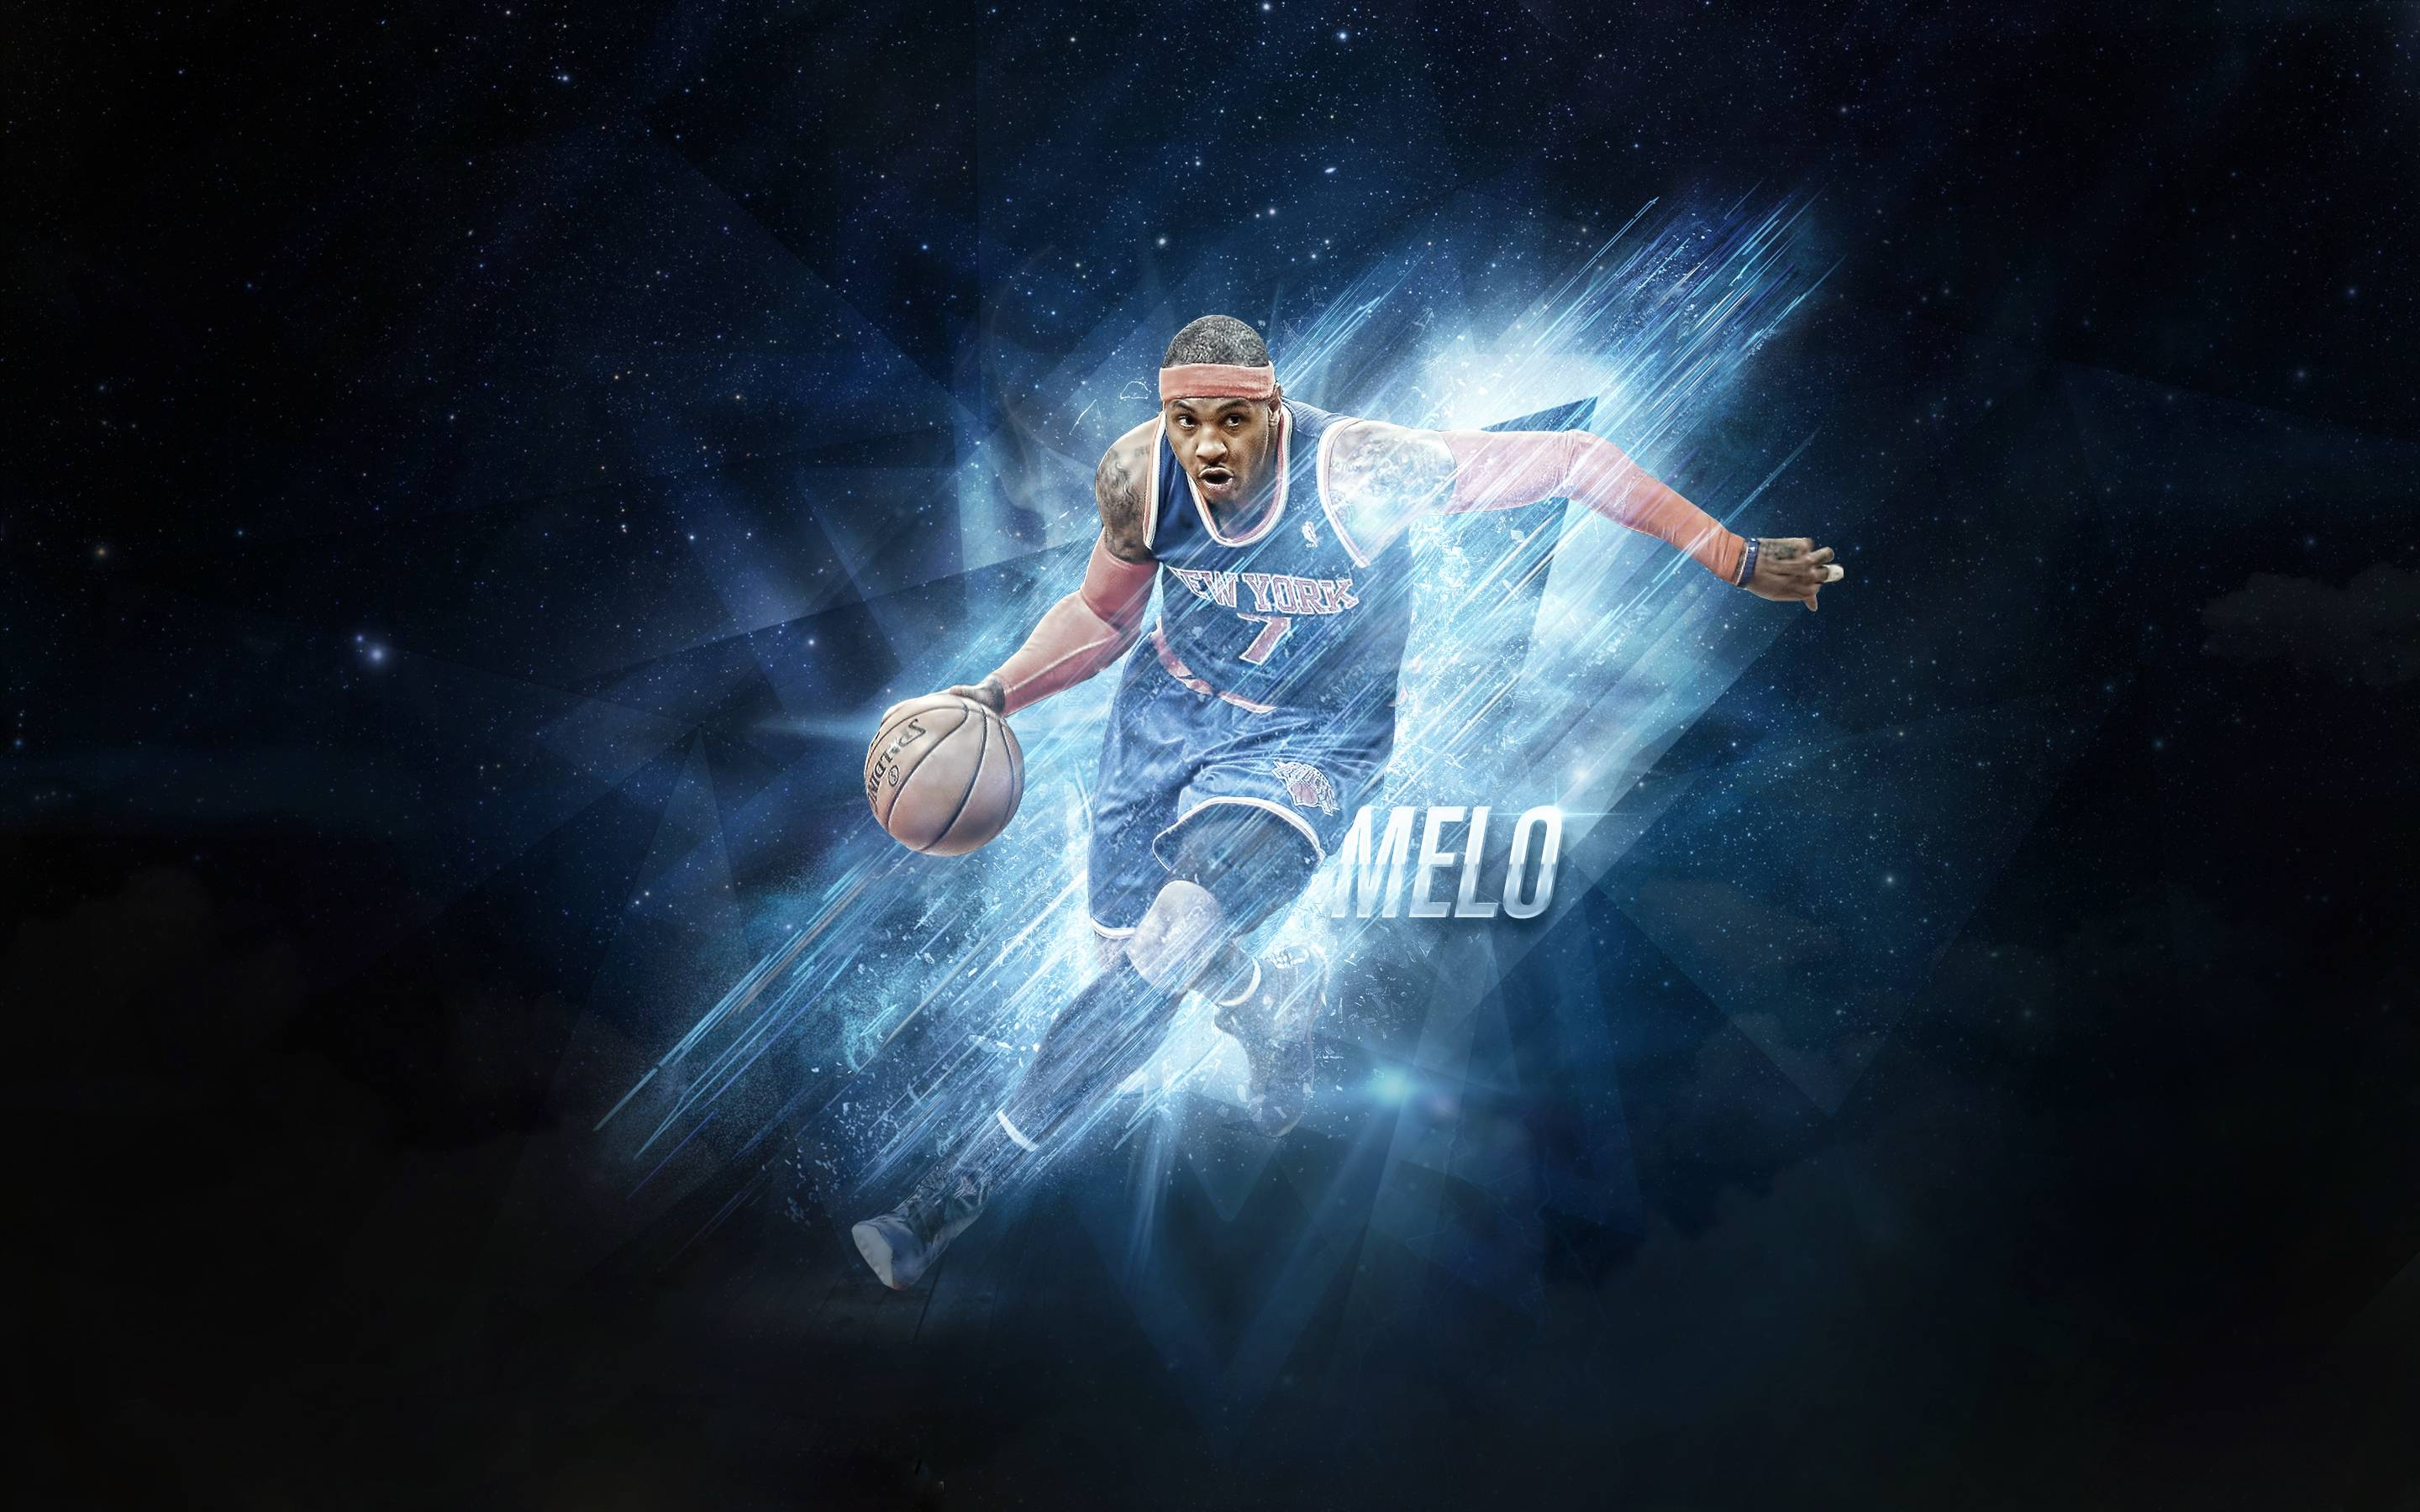 Wallpapers carmelo anthony, carmelo anthony, player, nba